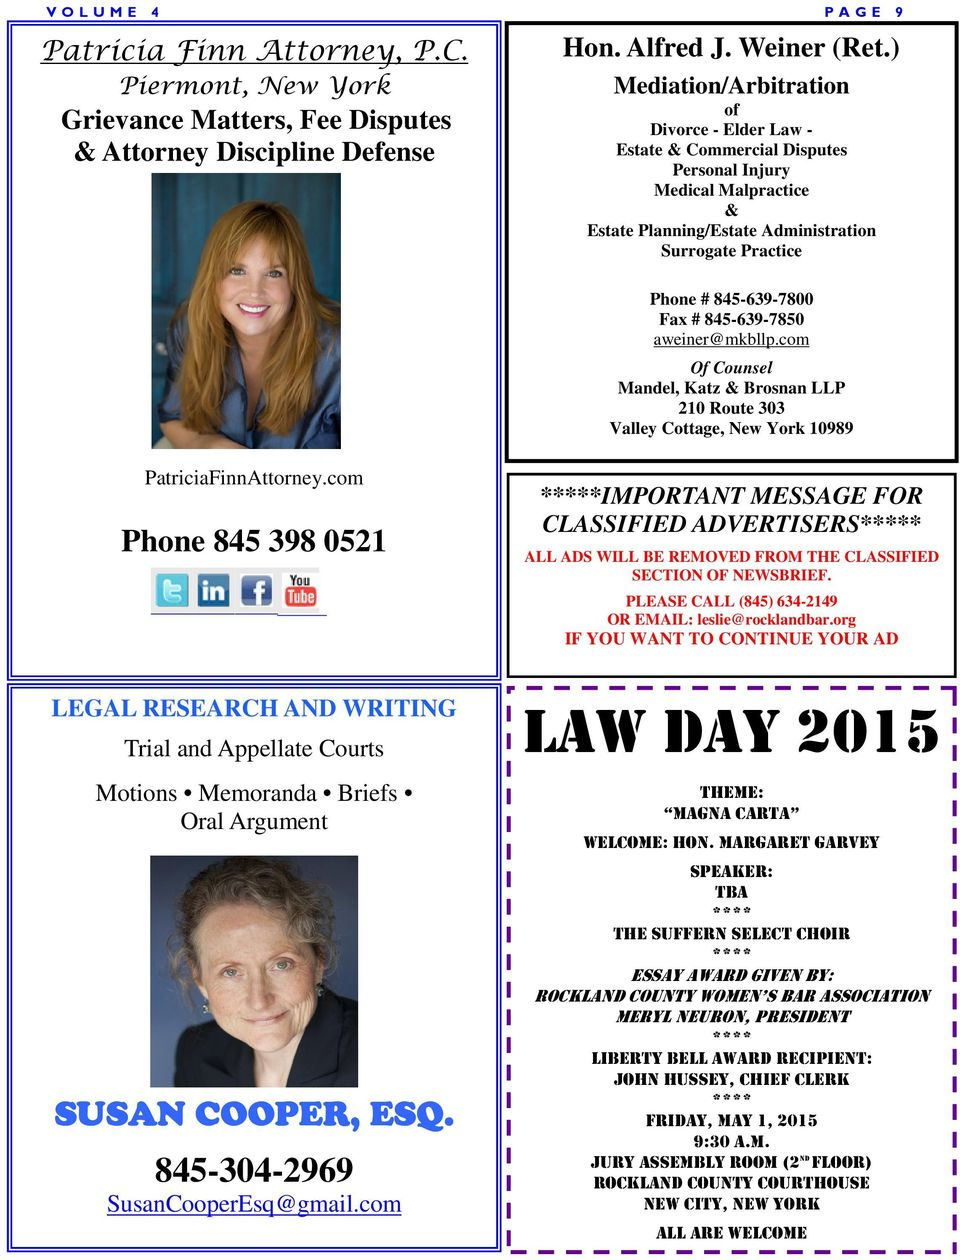 845-639-7850 aweiner@mkbllp.com Of Counsel Mandel, Katz & Brosnan LLP 210 Route 303 Valley Cottage, New York 10989 PatriciaFinnAttorney.